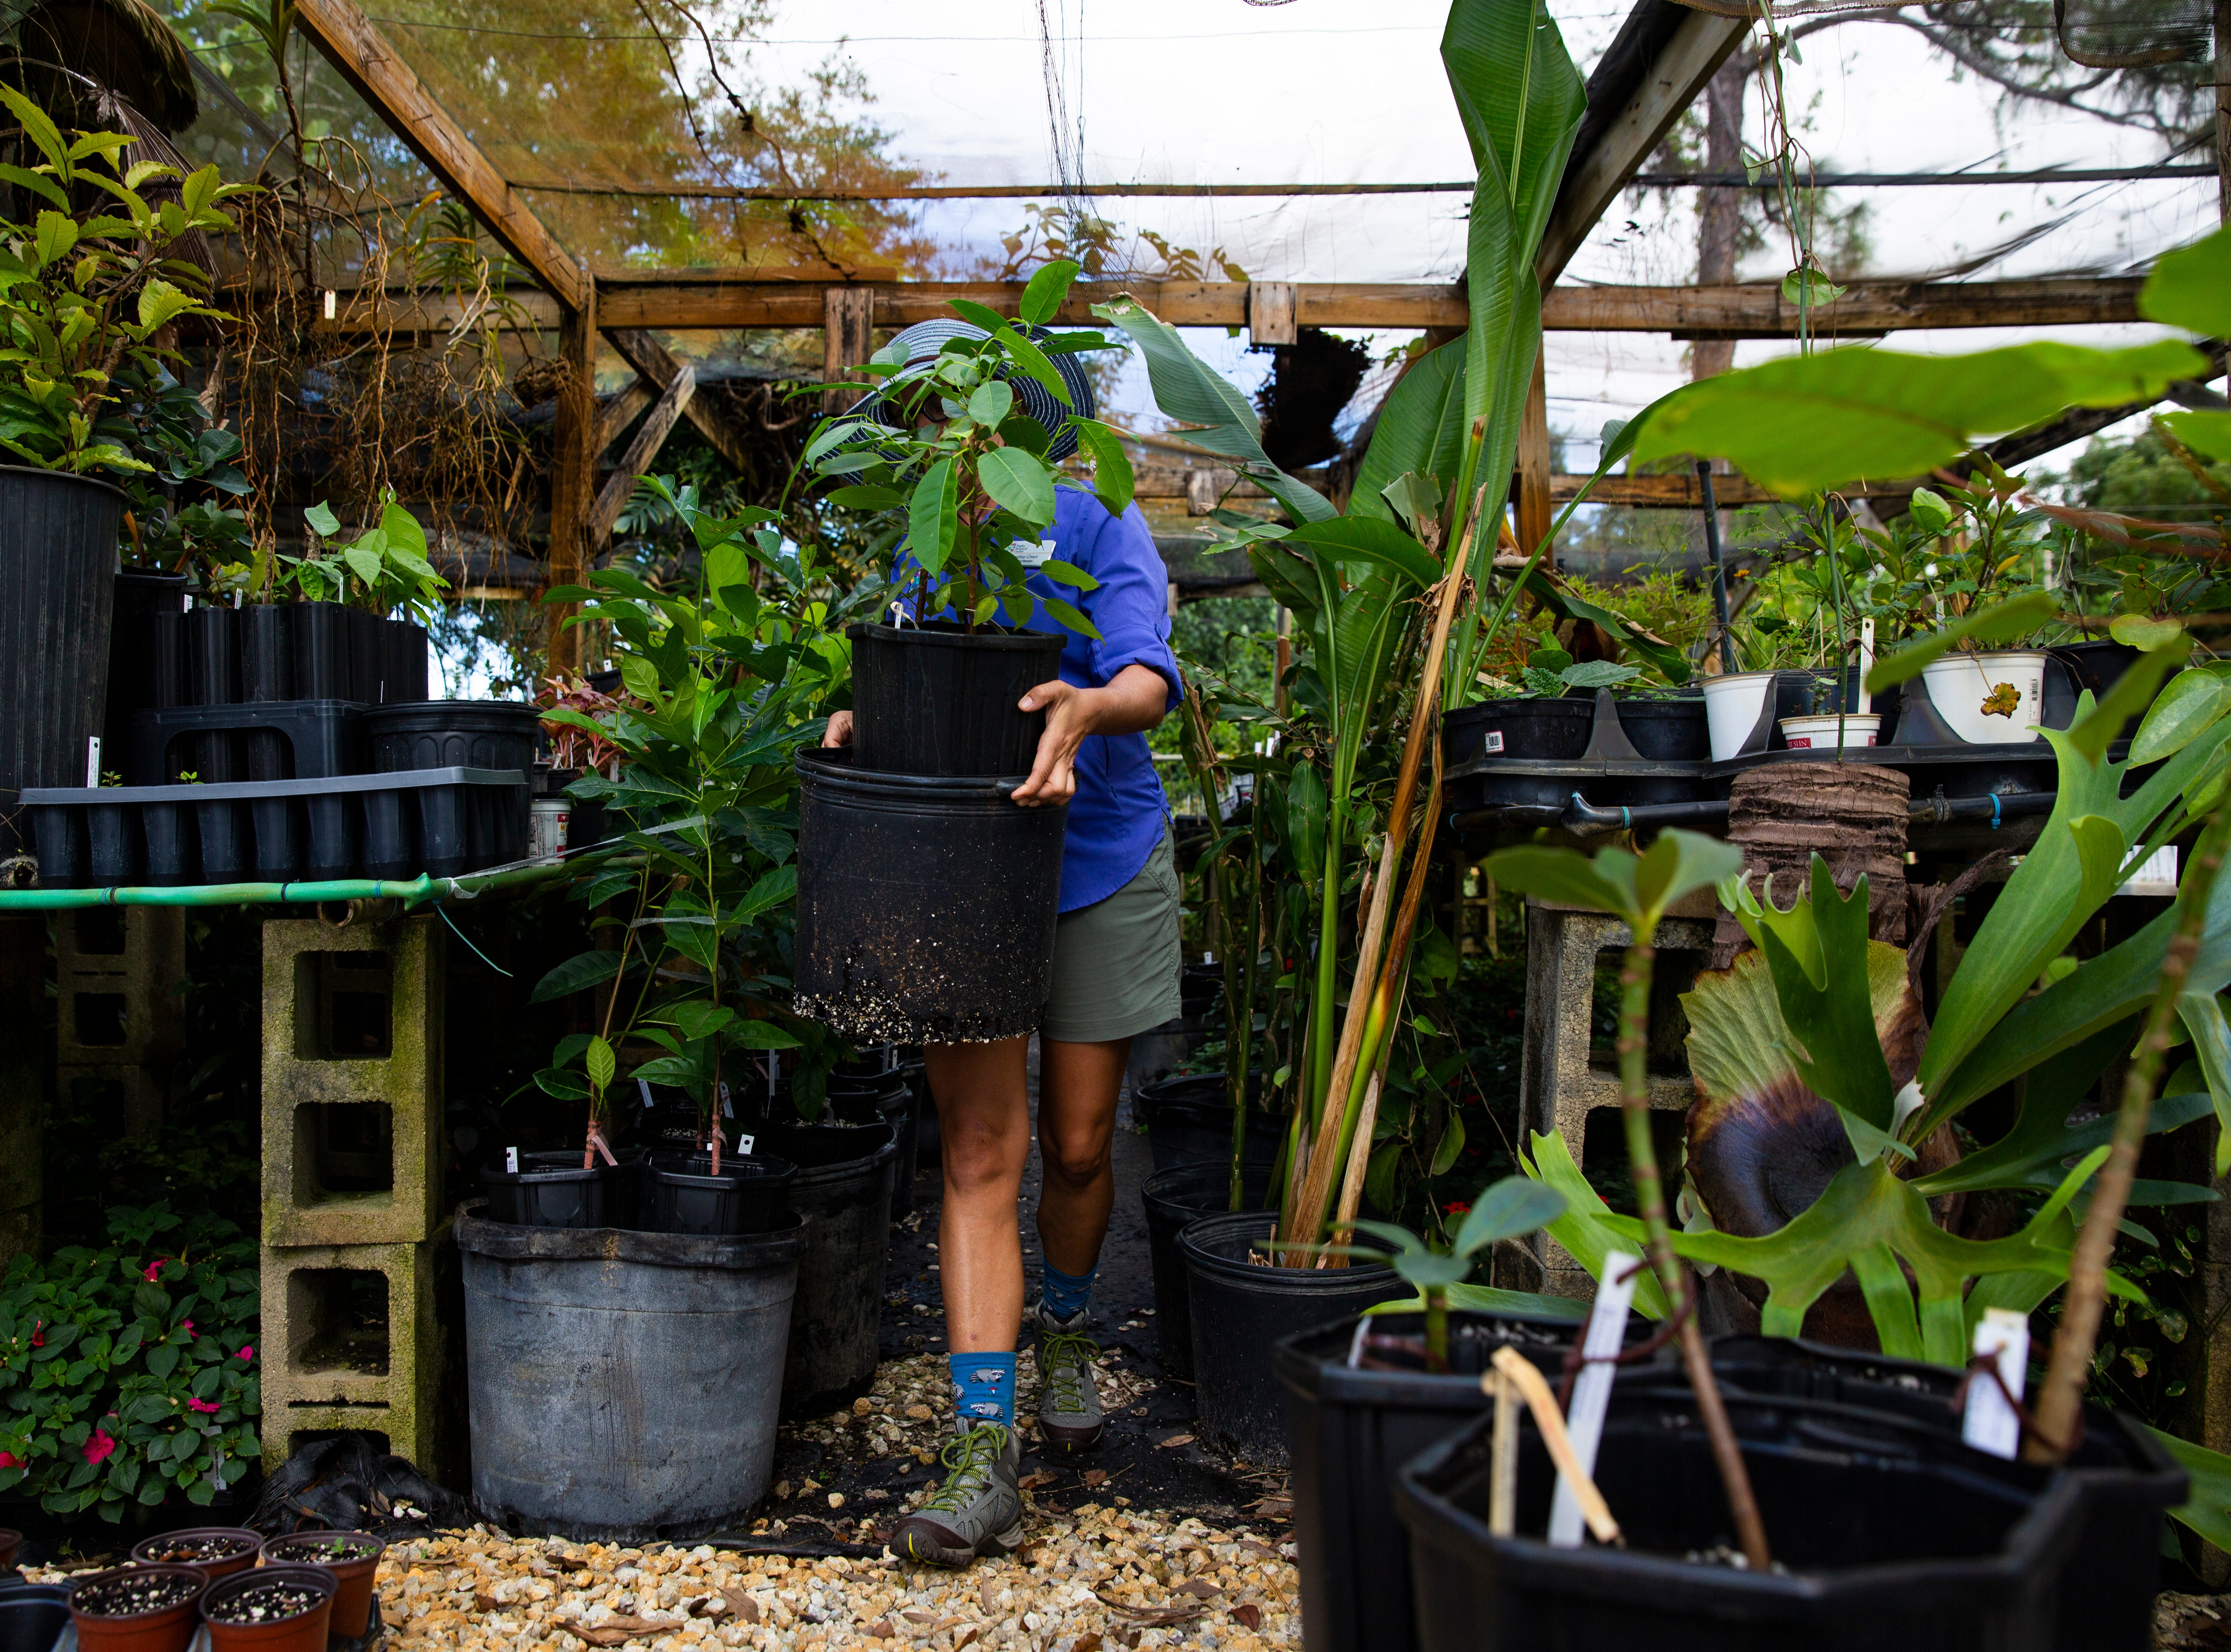 Naples Botanical Garden nursery manager Andrea Grace on Thursday, Nov. 15, 2018, takes care of some of the 86 seedlings and plants that were brought from Puerto Rico to Naples Botanical Garden after Hurricane Maria.